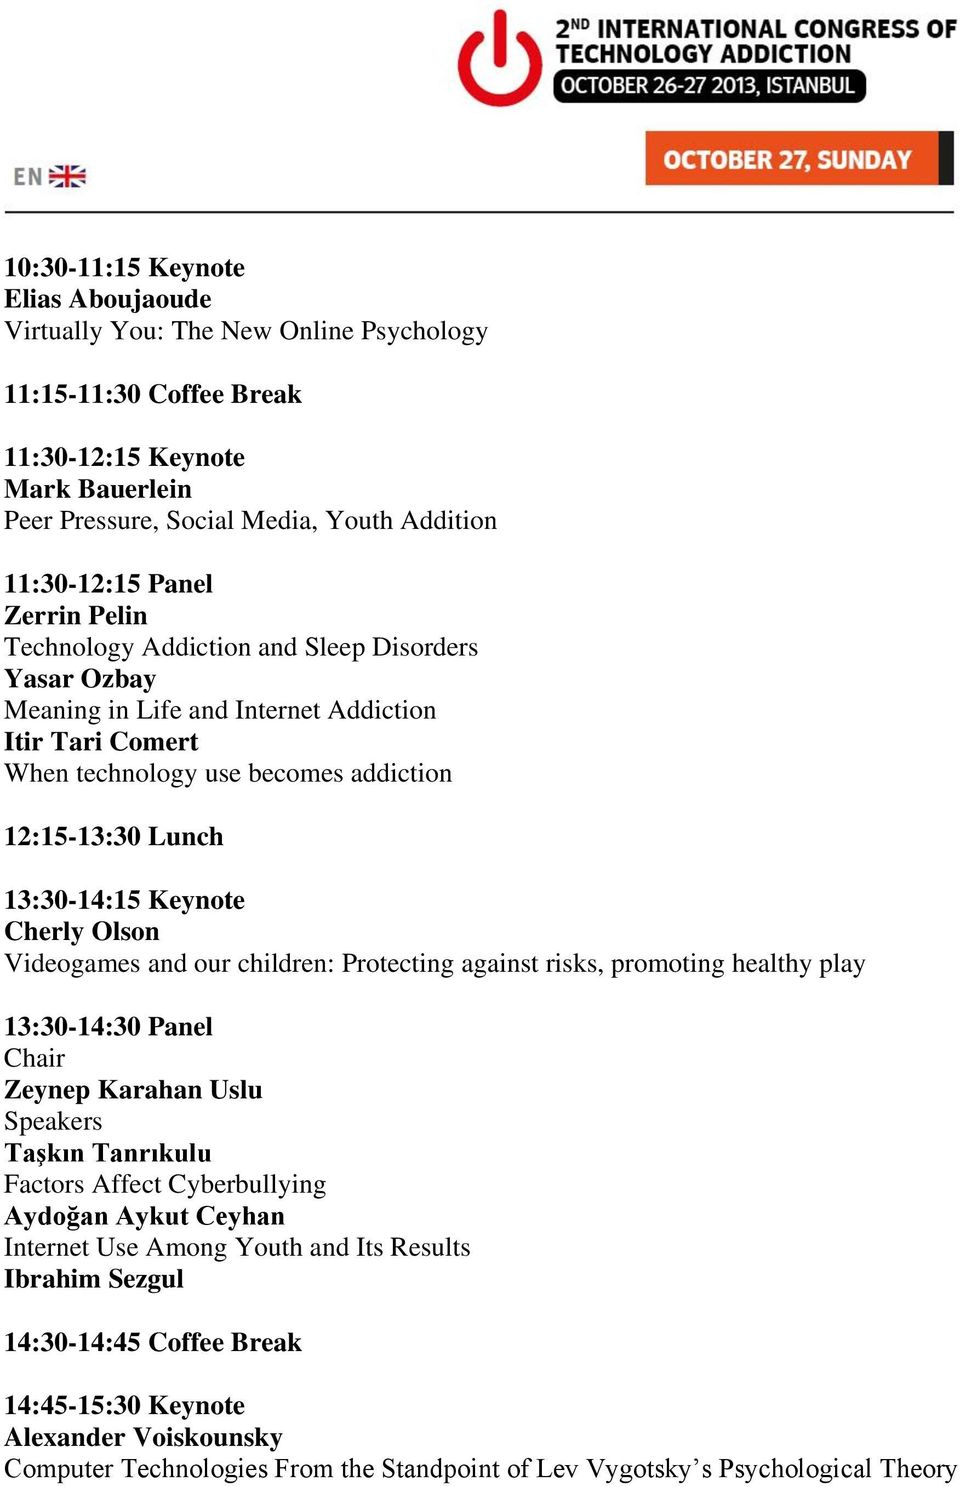 Cherly Olson Videogames and our children: Protecting against risks, promoting healthy play 13:30-14:30 Panel Chair Zeynep Karahan Uslu Taşkın Tanrıkulu Factors Affect Cyberbullying Aydoğan Aykut